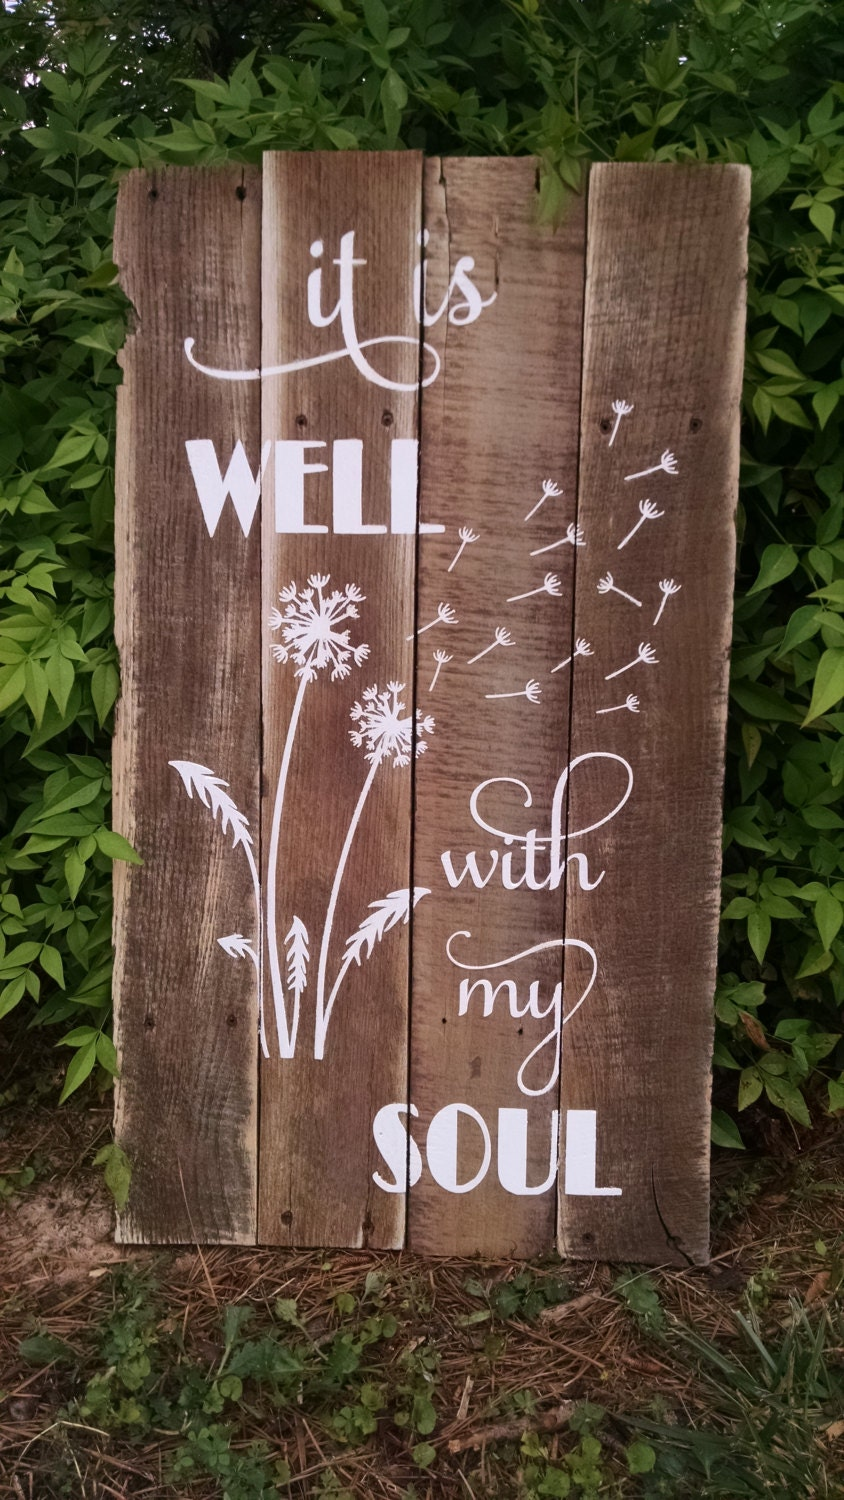 christian decor wall gifts wood soul well signs sign rustic crafts wooden pallet diy projects items painted farm hymn etsy